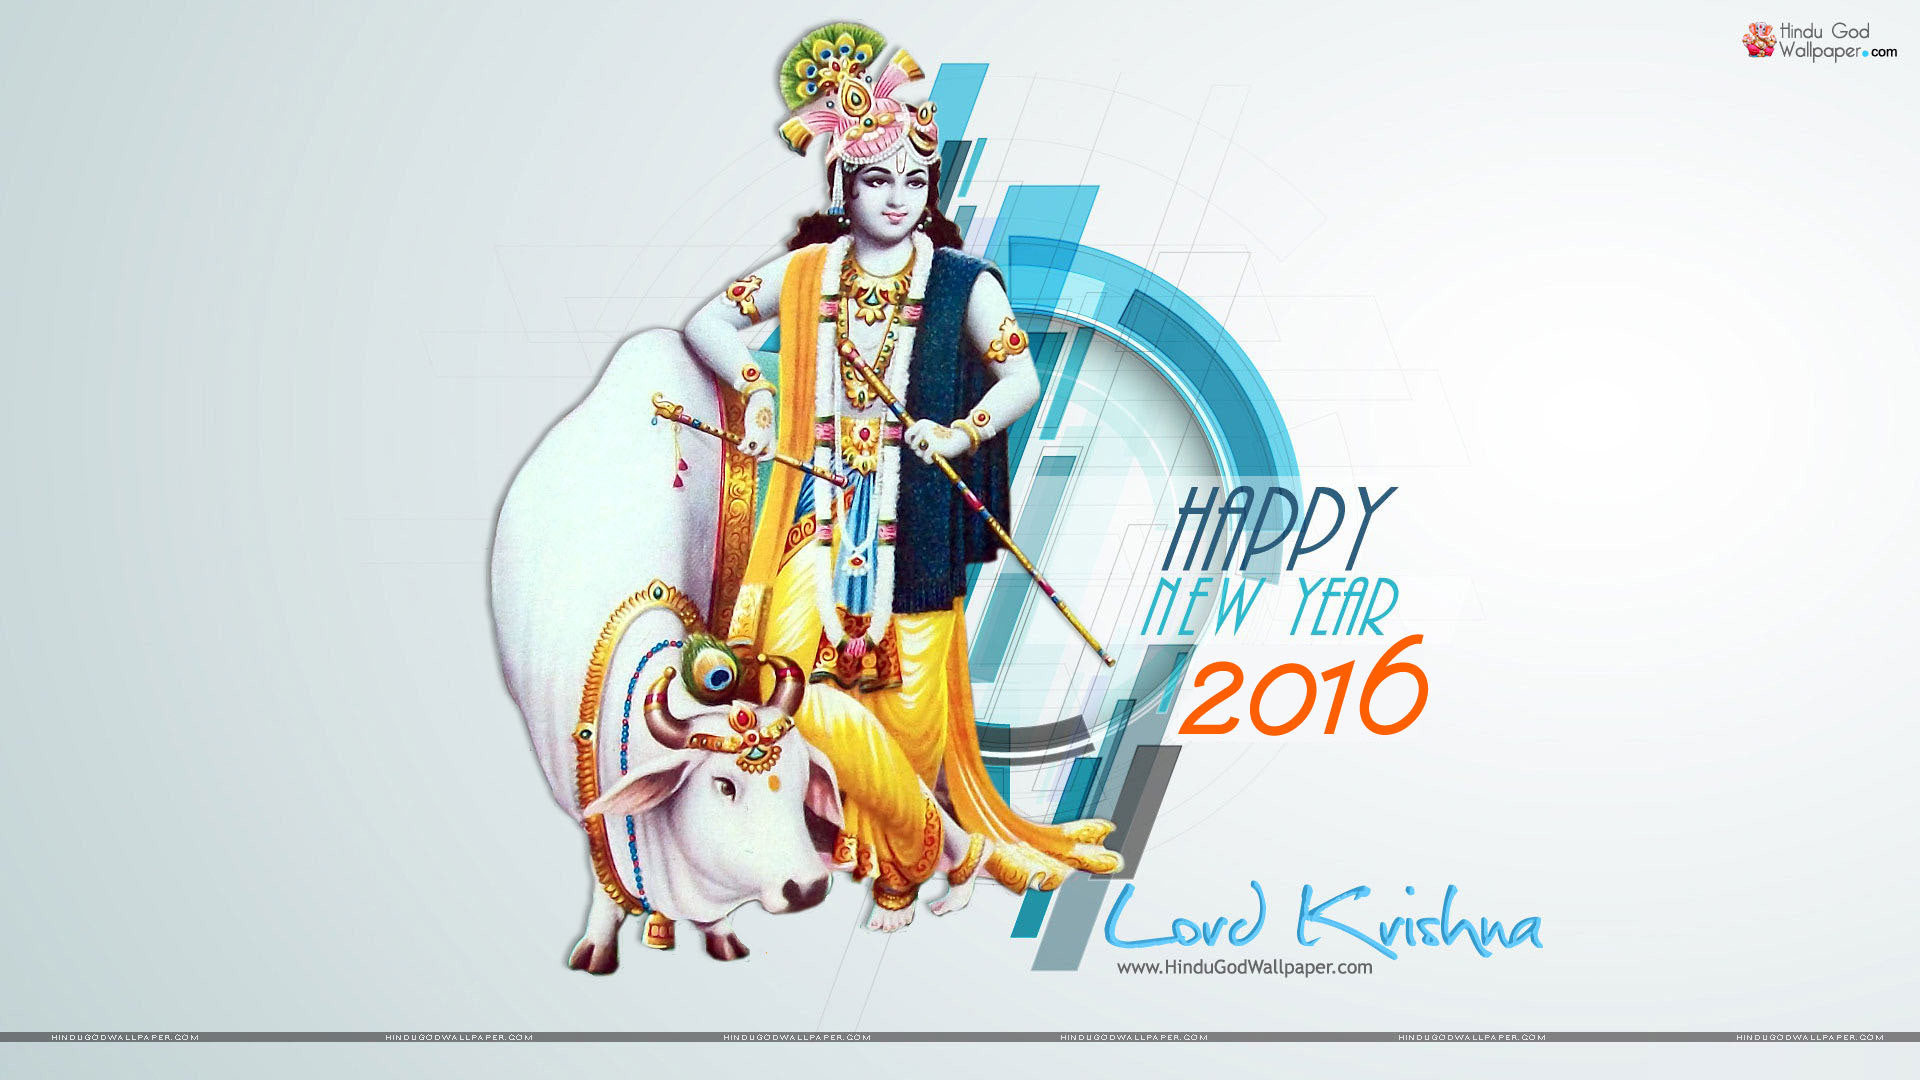 Happy New Year Krishna Image 73